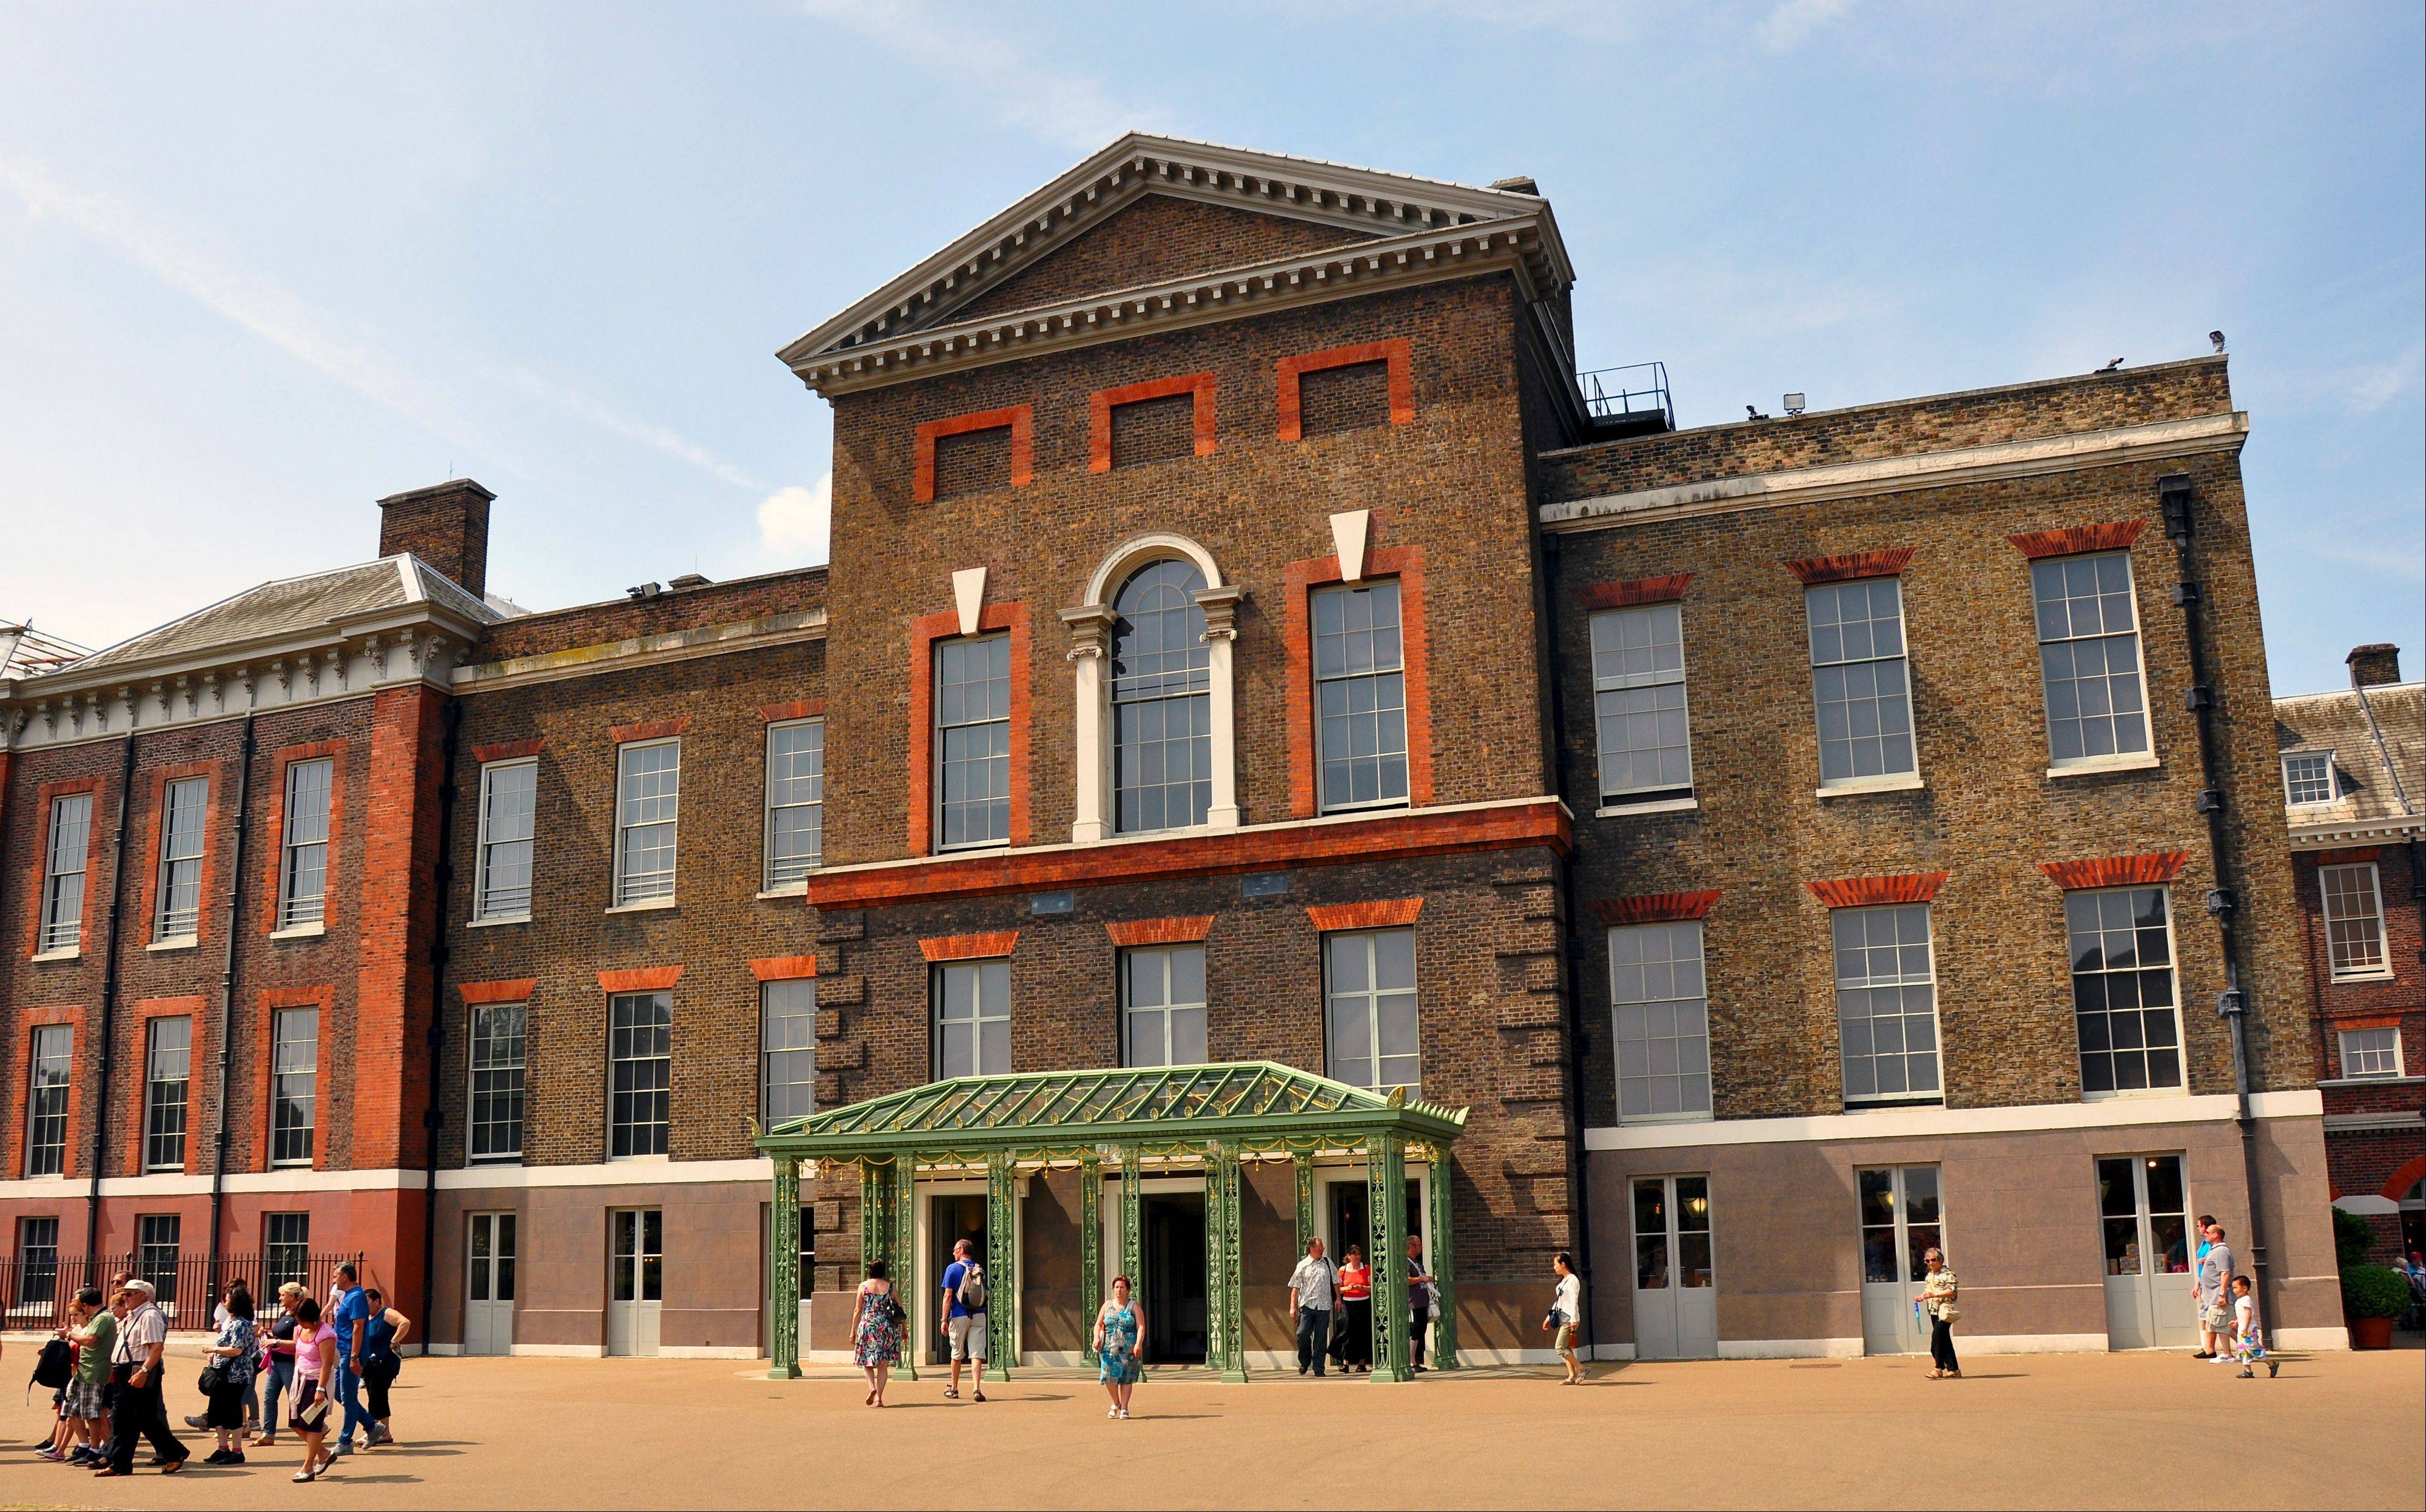 Kensington Palace, where William, Kate and baby Prince George live in London, was built in 1605 and has been in the royal family since 1689. Half of the palace is a museum open to the public.